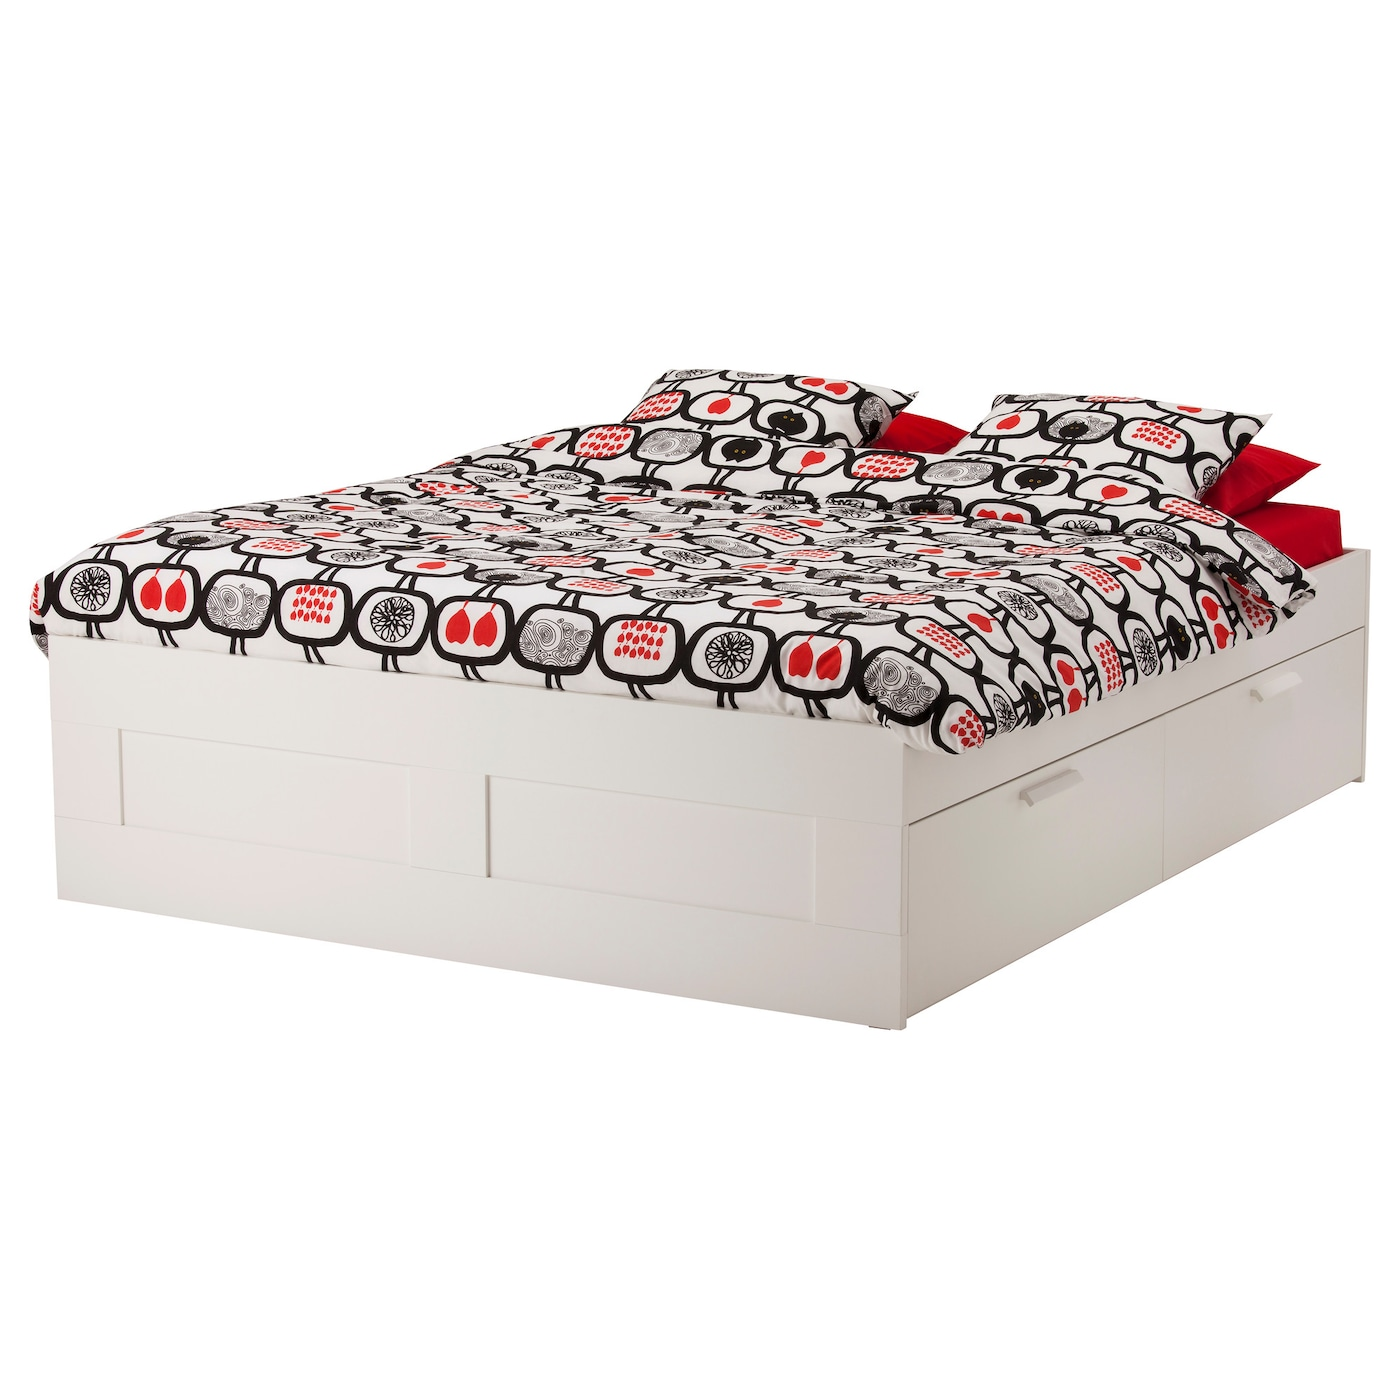 Brimnes bed frame with storage white lur y standard king - Tete de lit avec rangement ikea ...